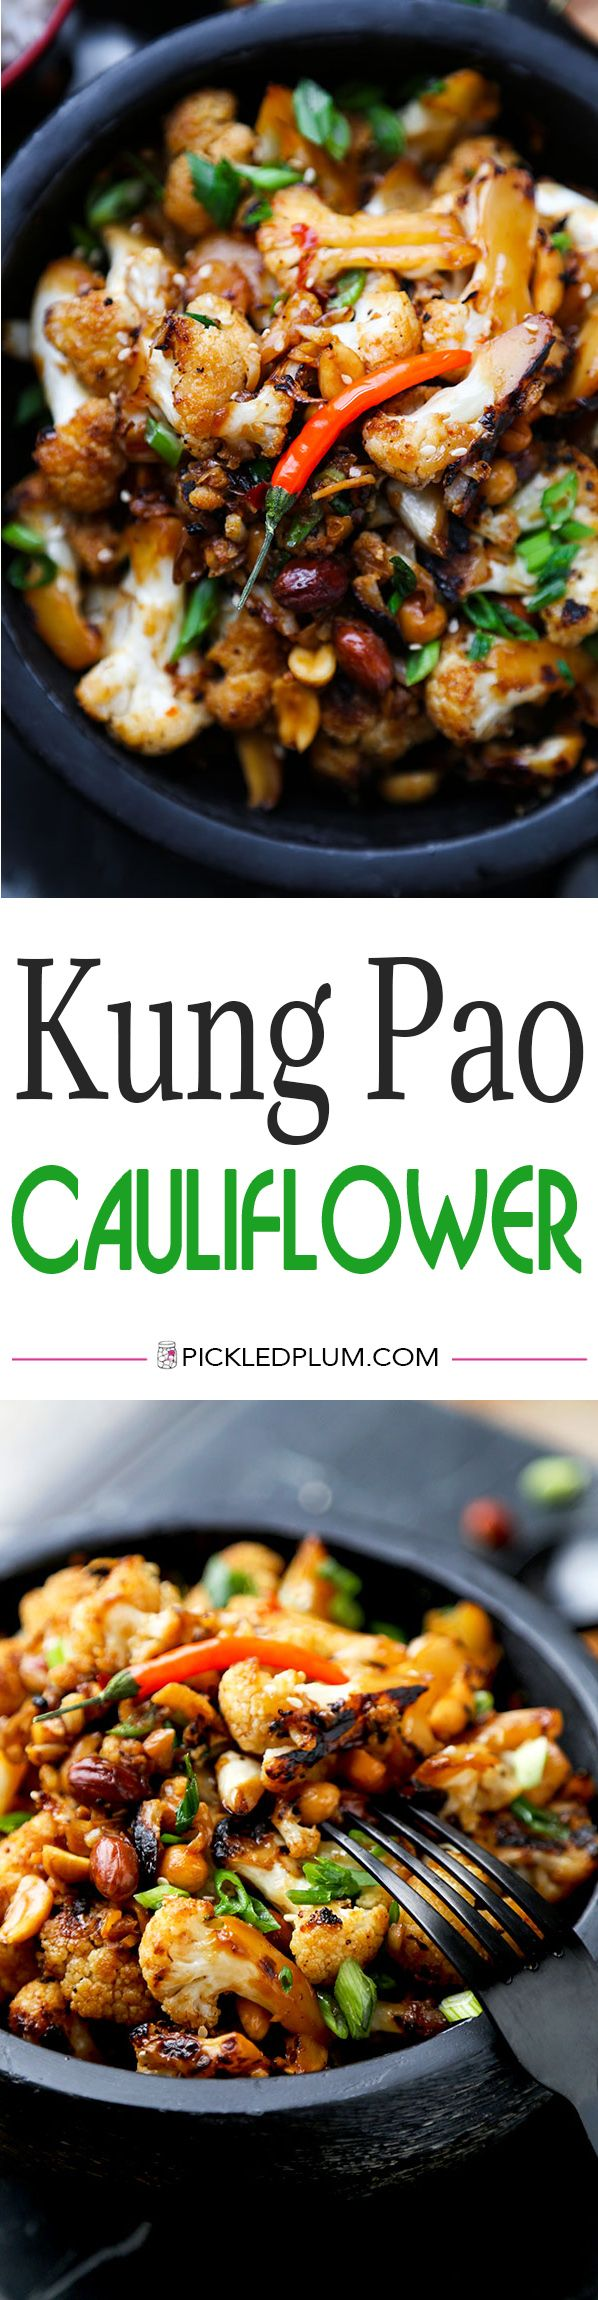 Kung Pao Cauliflower - A delicious alternative to classic Kung Pao Chicken, Kung Pao Cauliflower is just as smoky and satisfying but lower in calories and fat! Recipe, vegetables, healthy, Chinese food, cauliflower | pickledplum.com @pickledplumfood